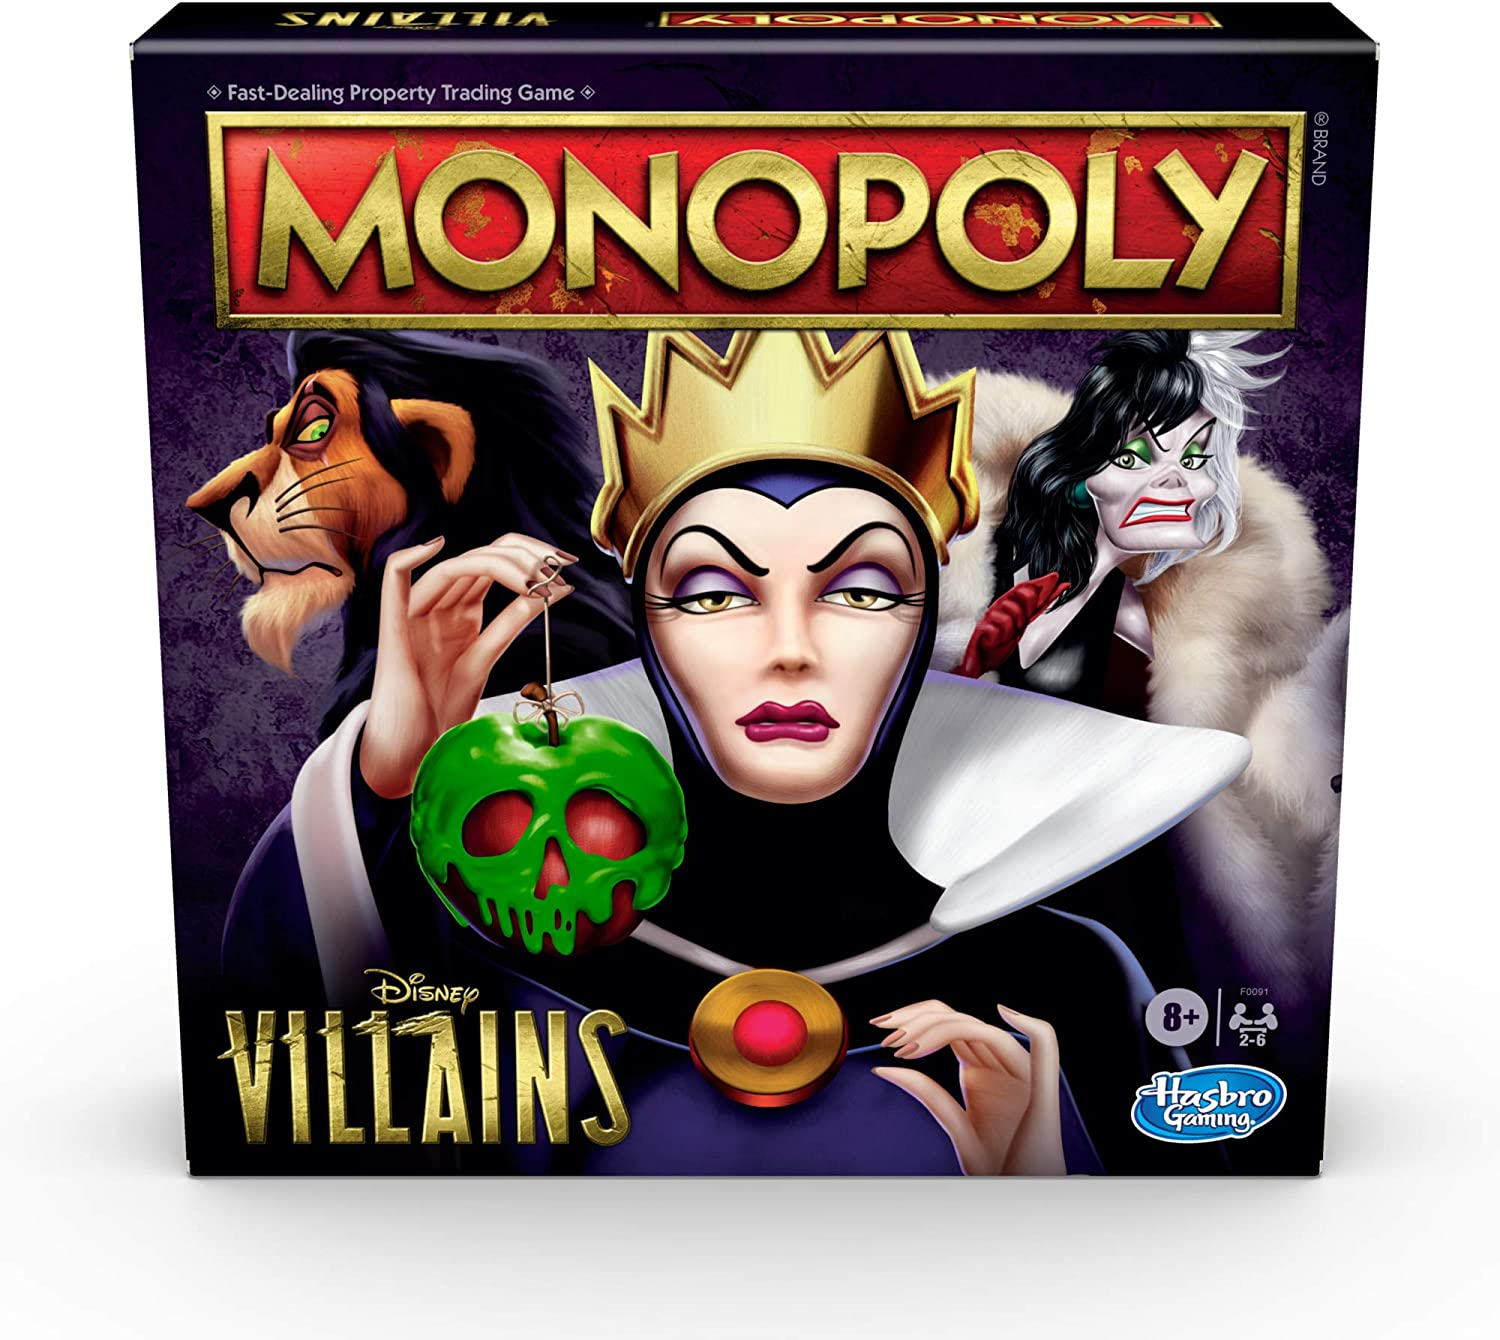 Disney Villains Monopoly: The Most Evil Board Game Of Them All?